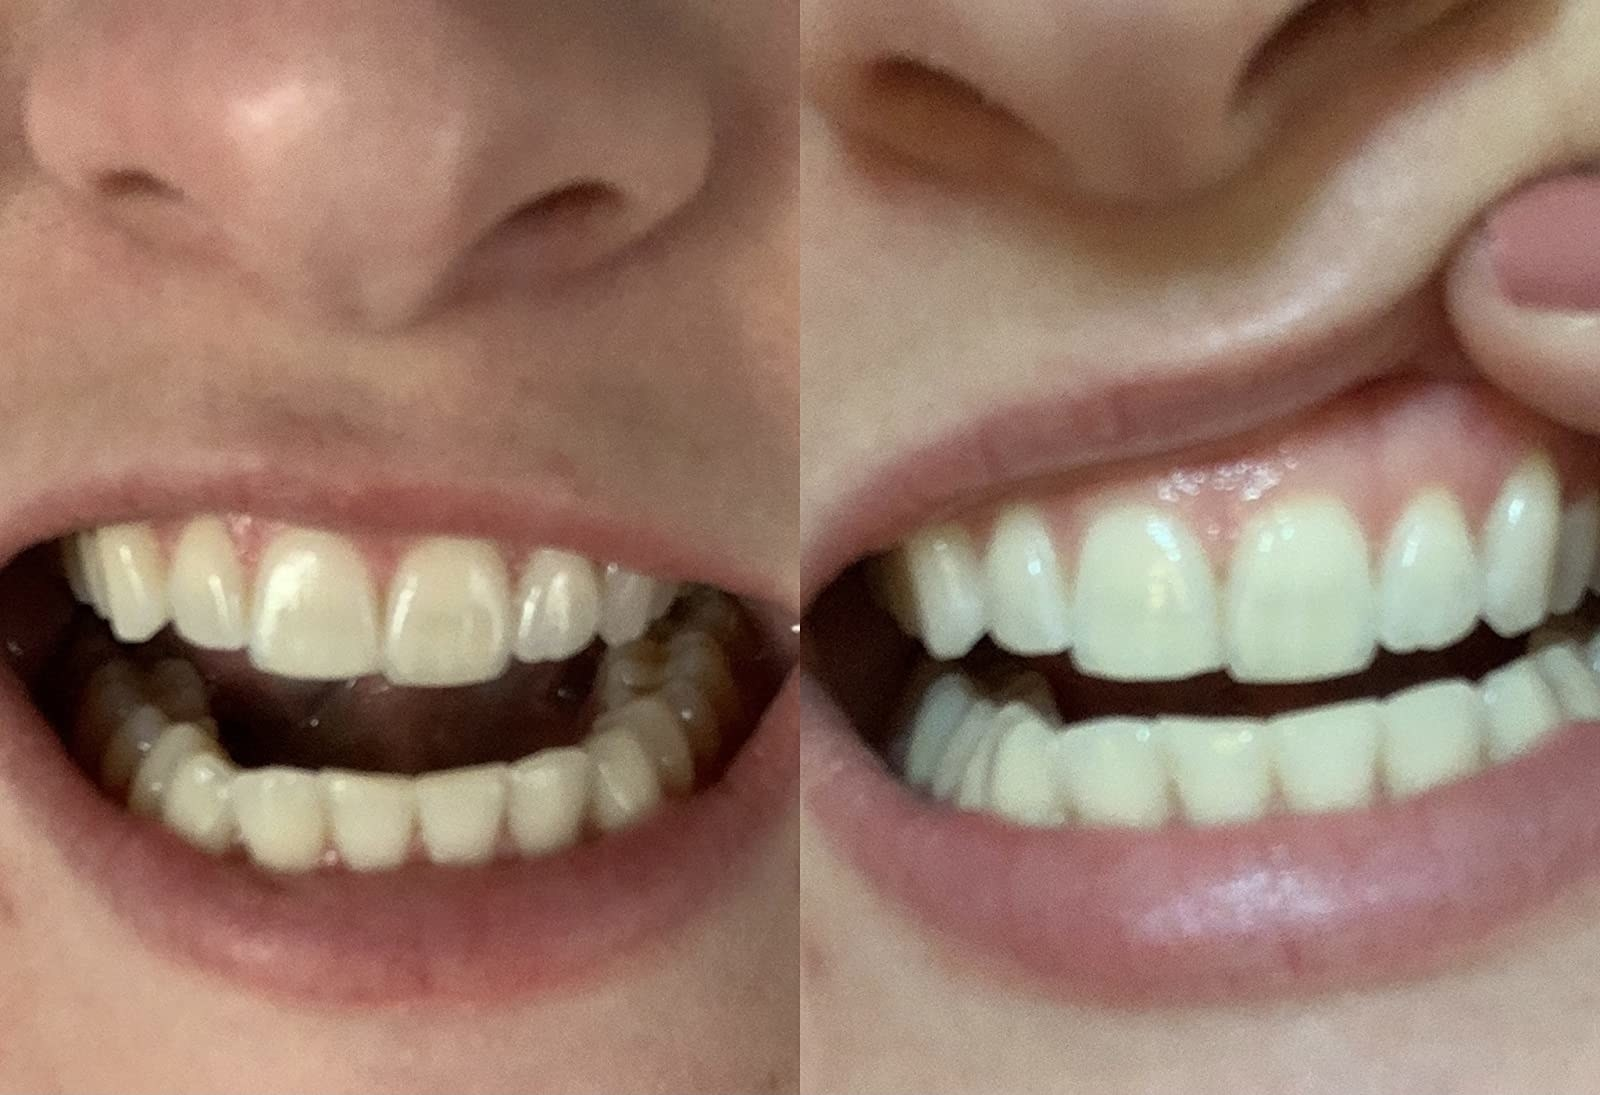 reviewer before and after showing their teeth visibly whiter after using the pen